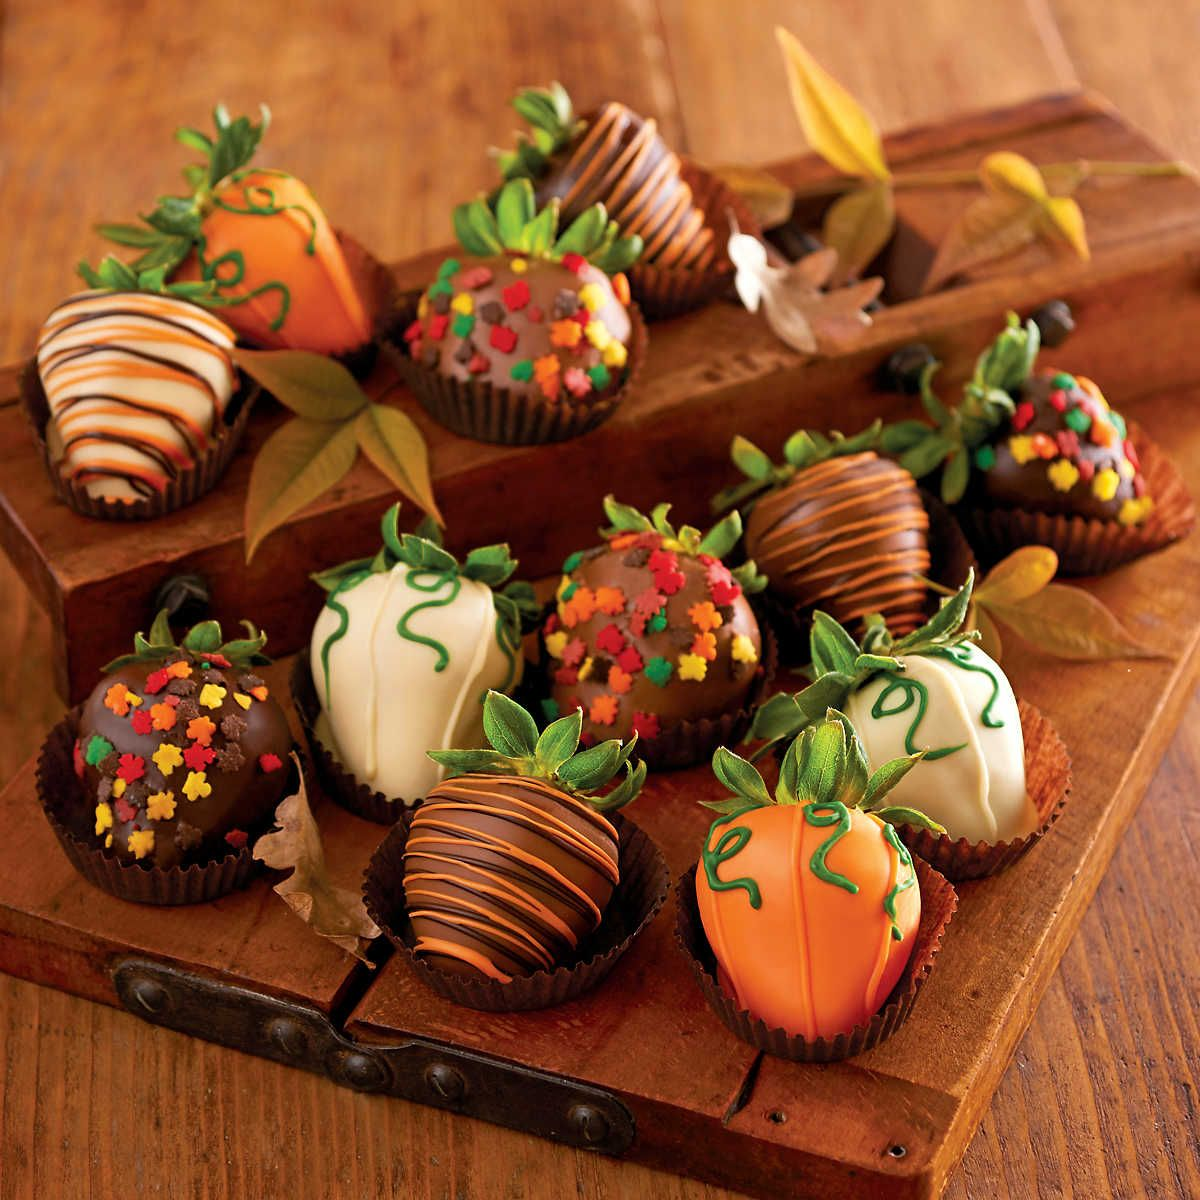 Harvest Chocolate-Covered Strawberries Delivery | Harry & David ...